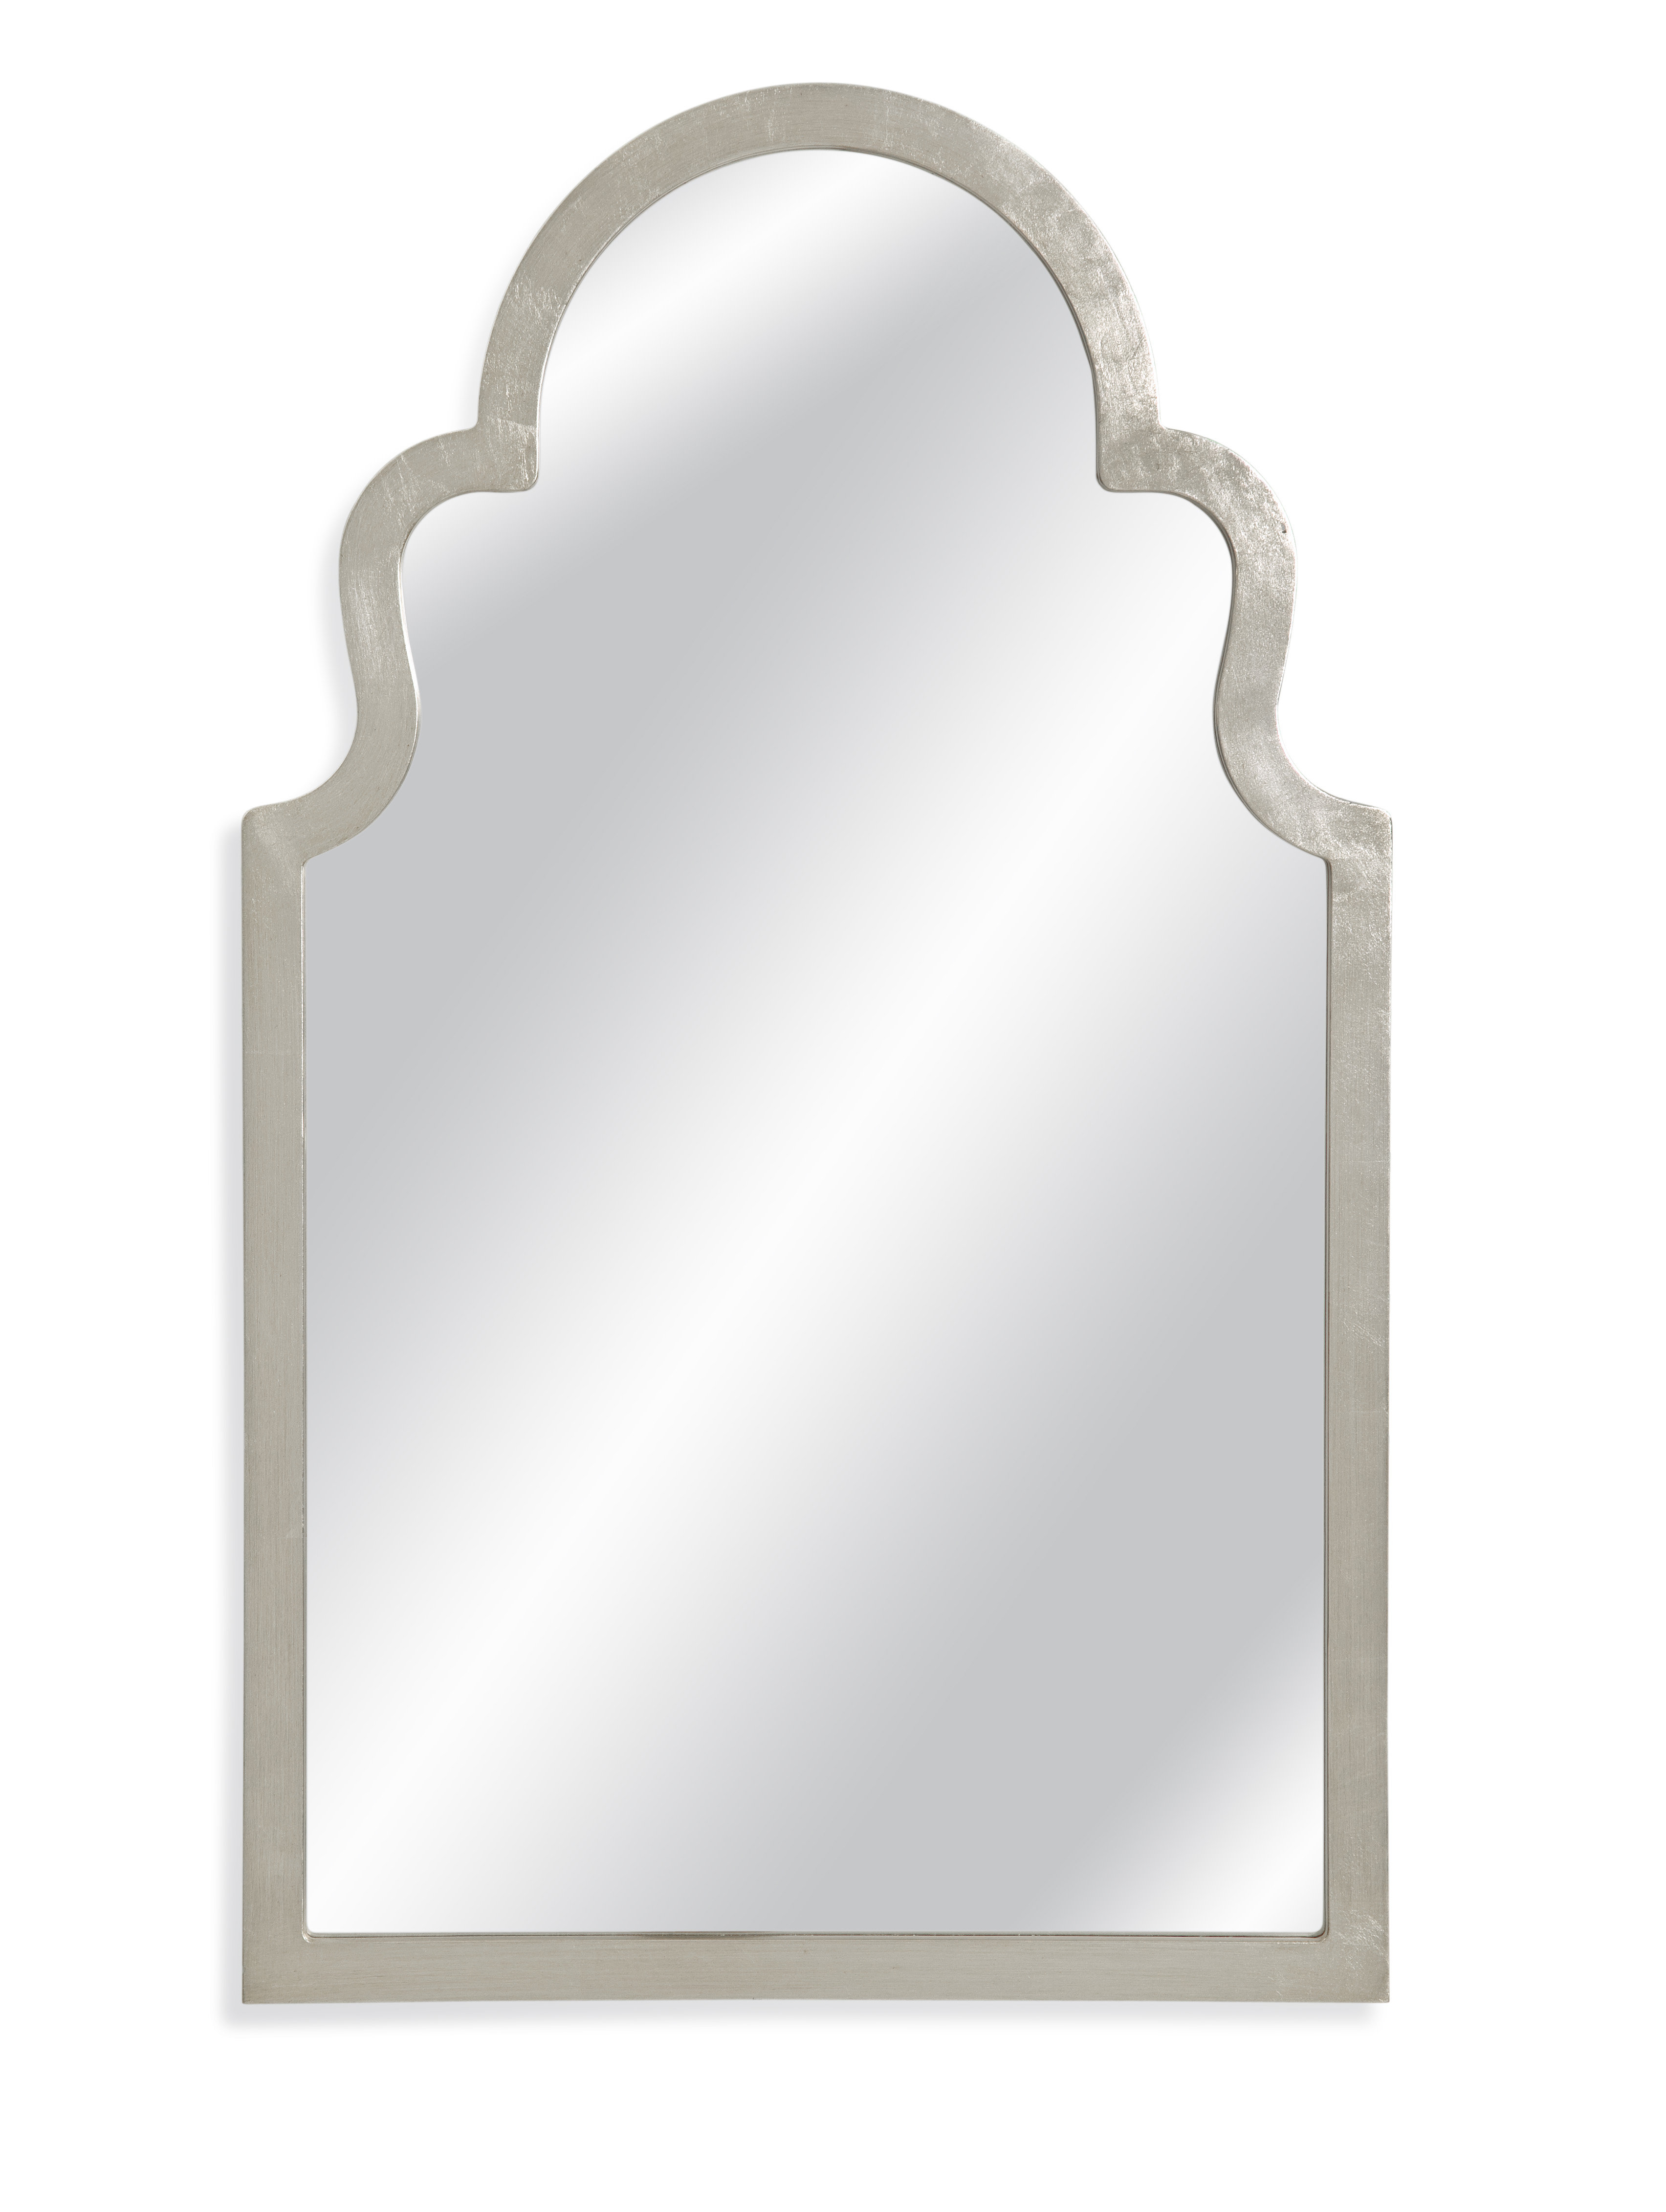 Arch Top Vertical Wall Mirror Regarding Dariel Tall Arched Scalloped Wall Mirrors (Image 2 of 20)